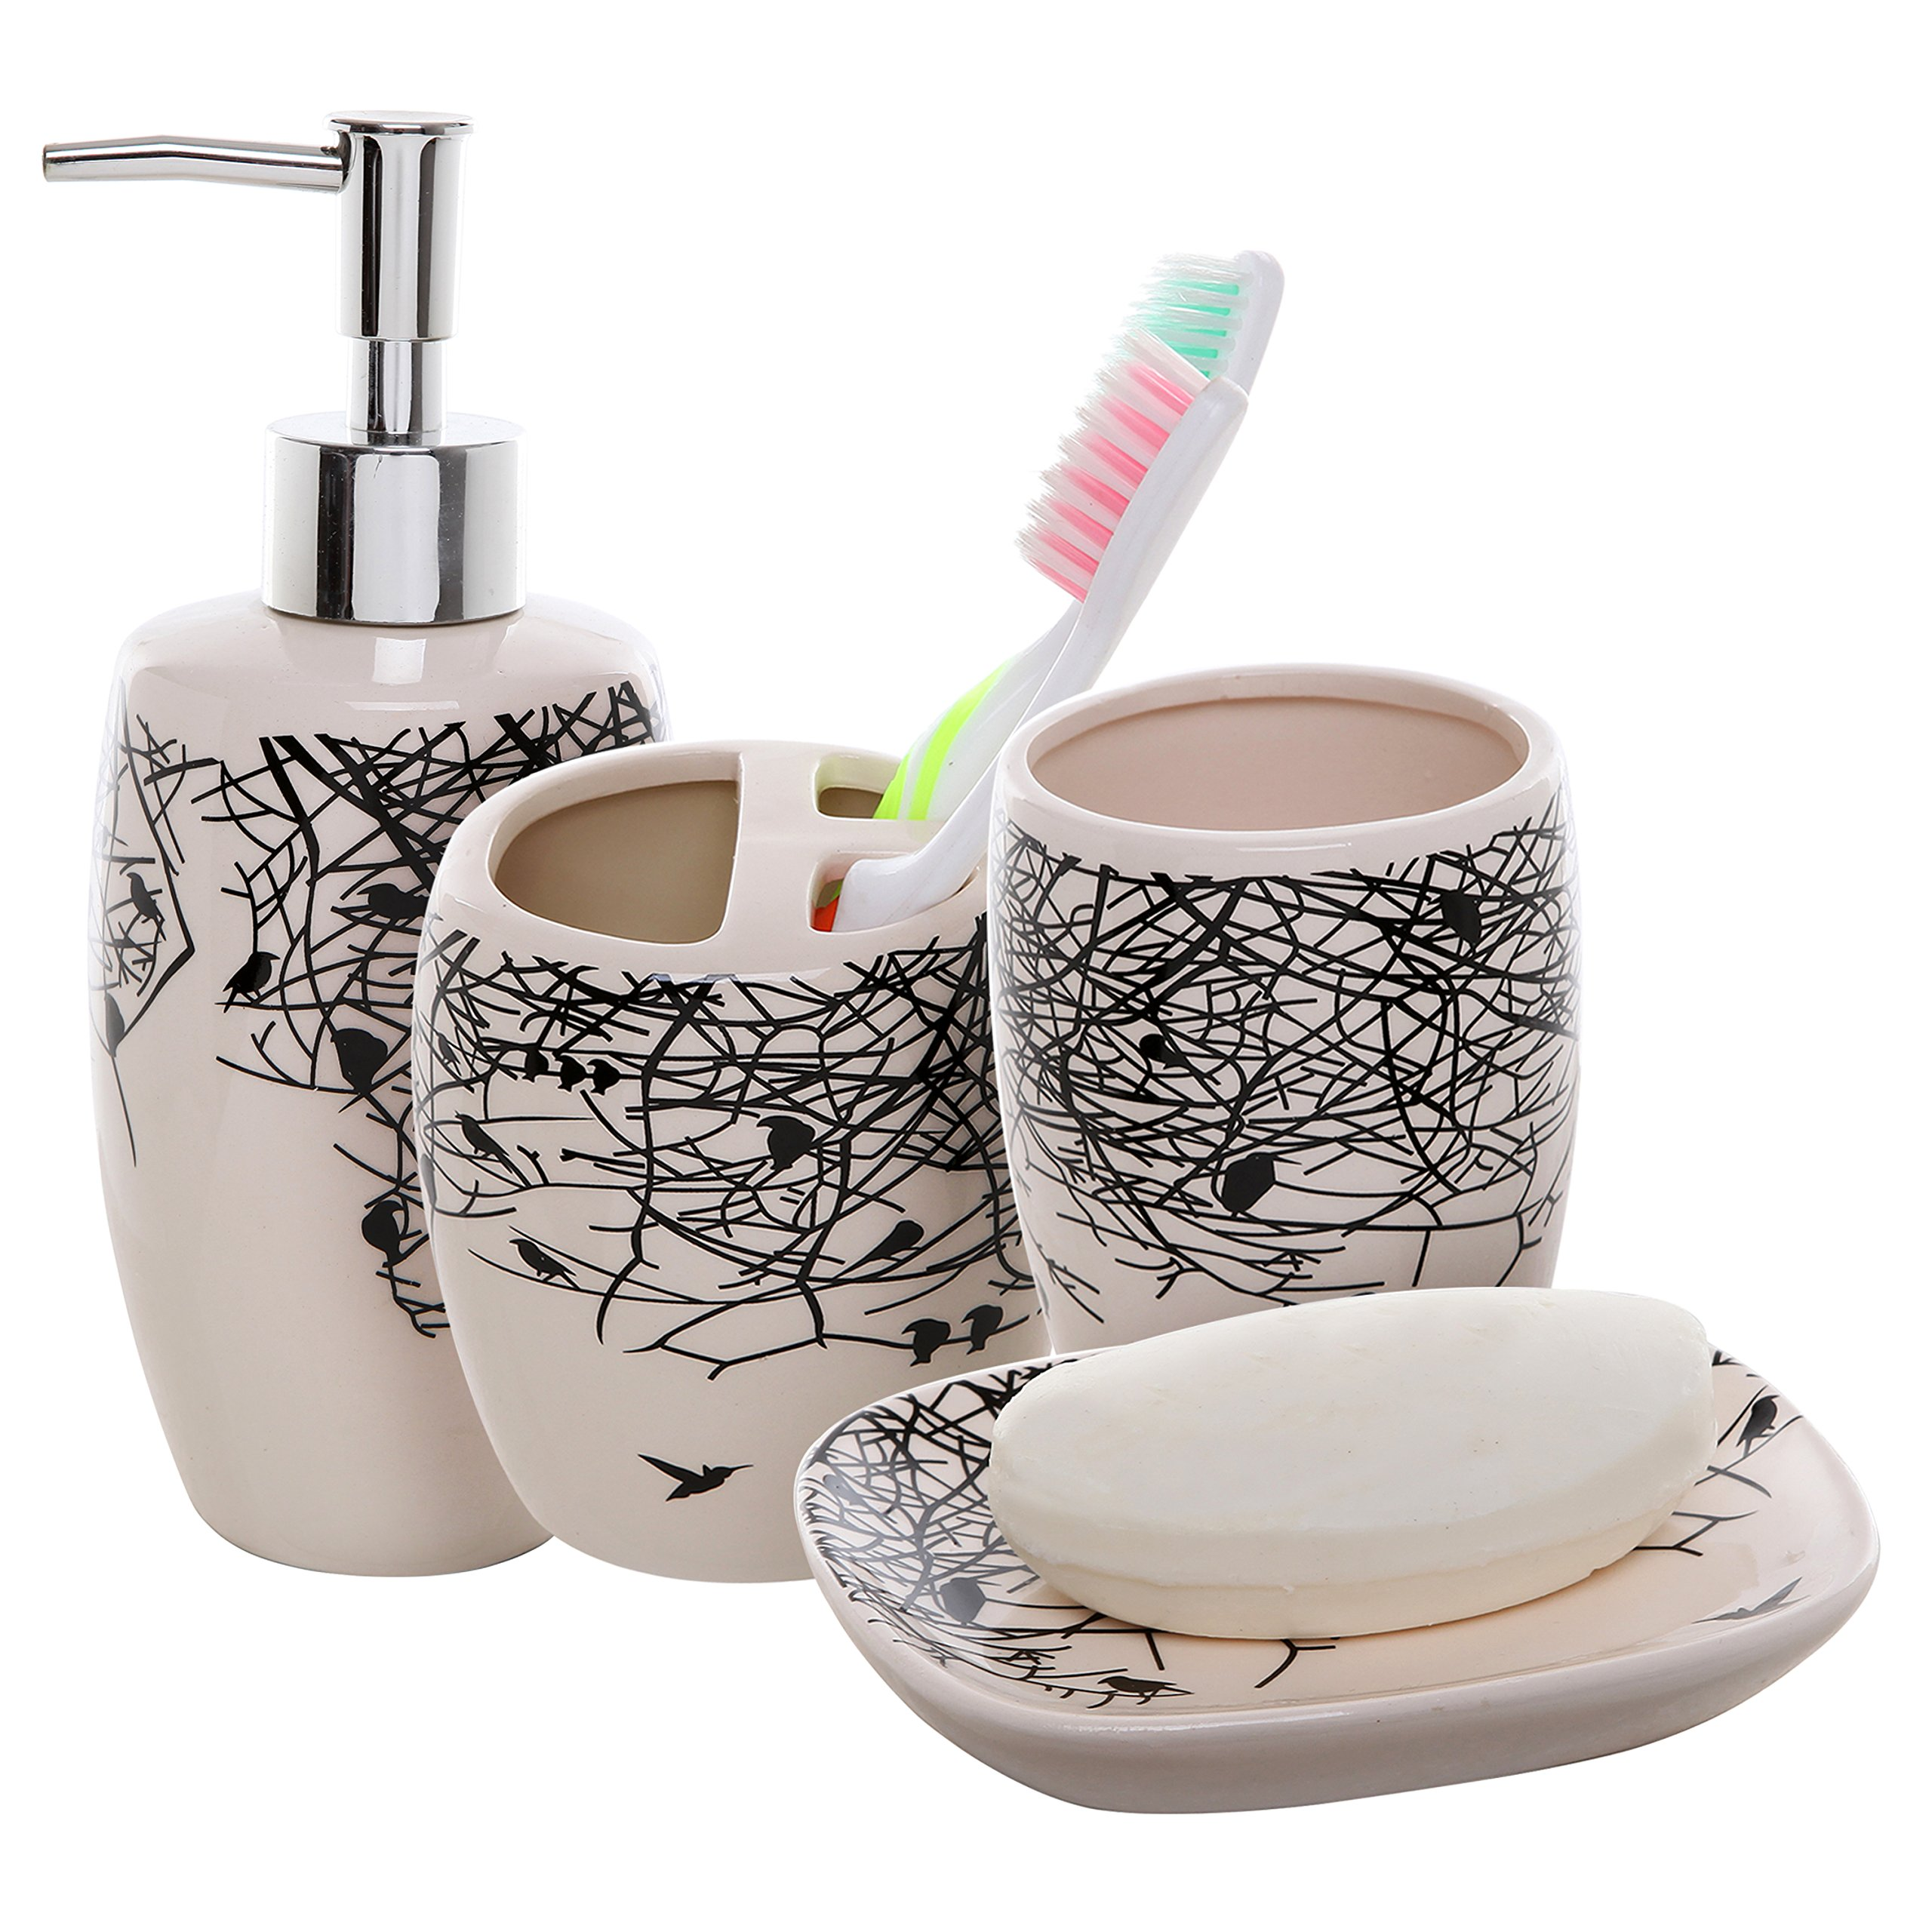 4 piece beige ceramic bathroom accessories set